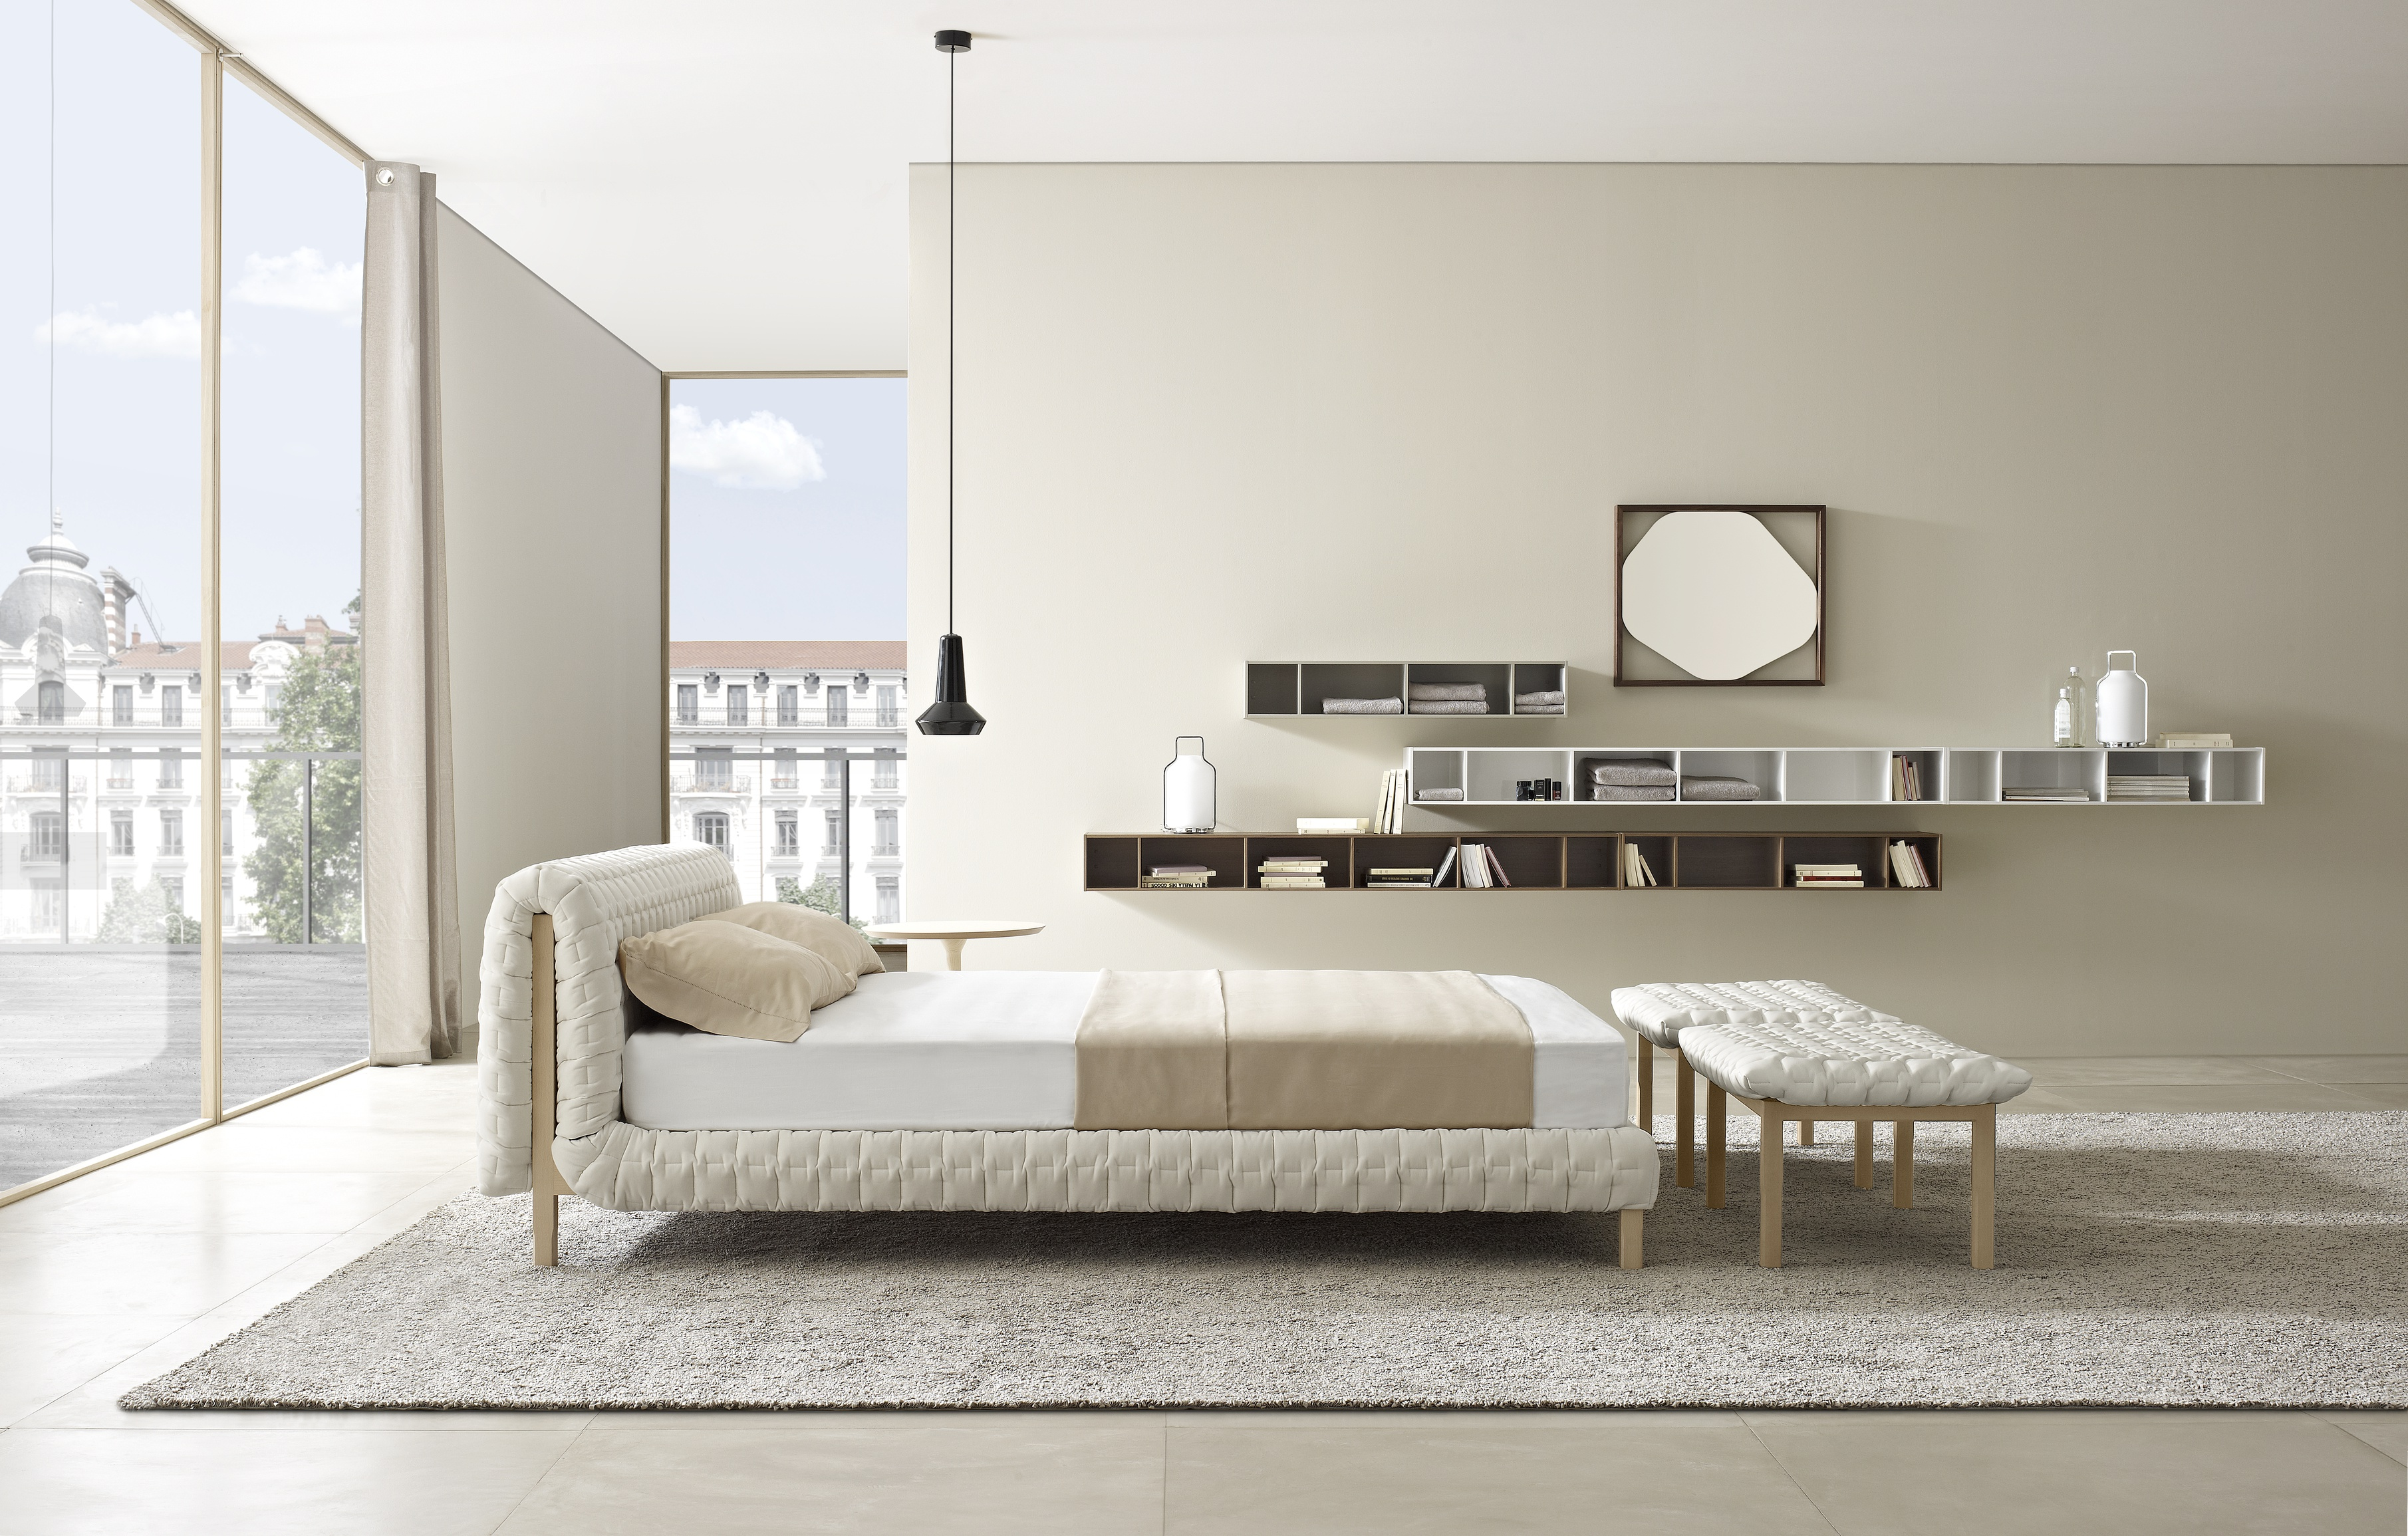 ruch lits du designer inga semp ligne roset site officiel. Black Bedroom Furniture Sets. Home Design Ideas